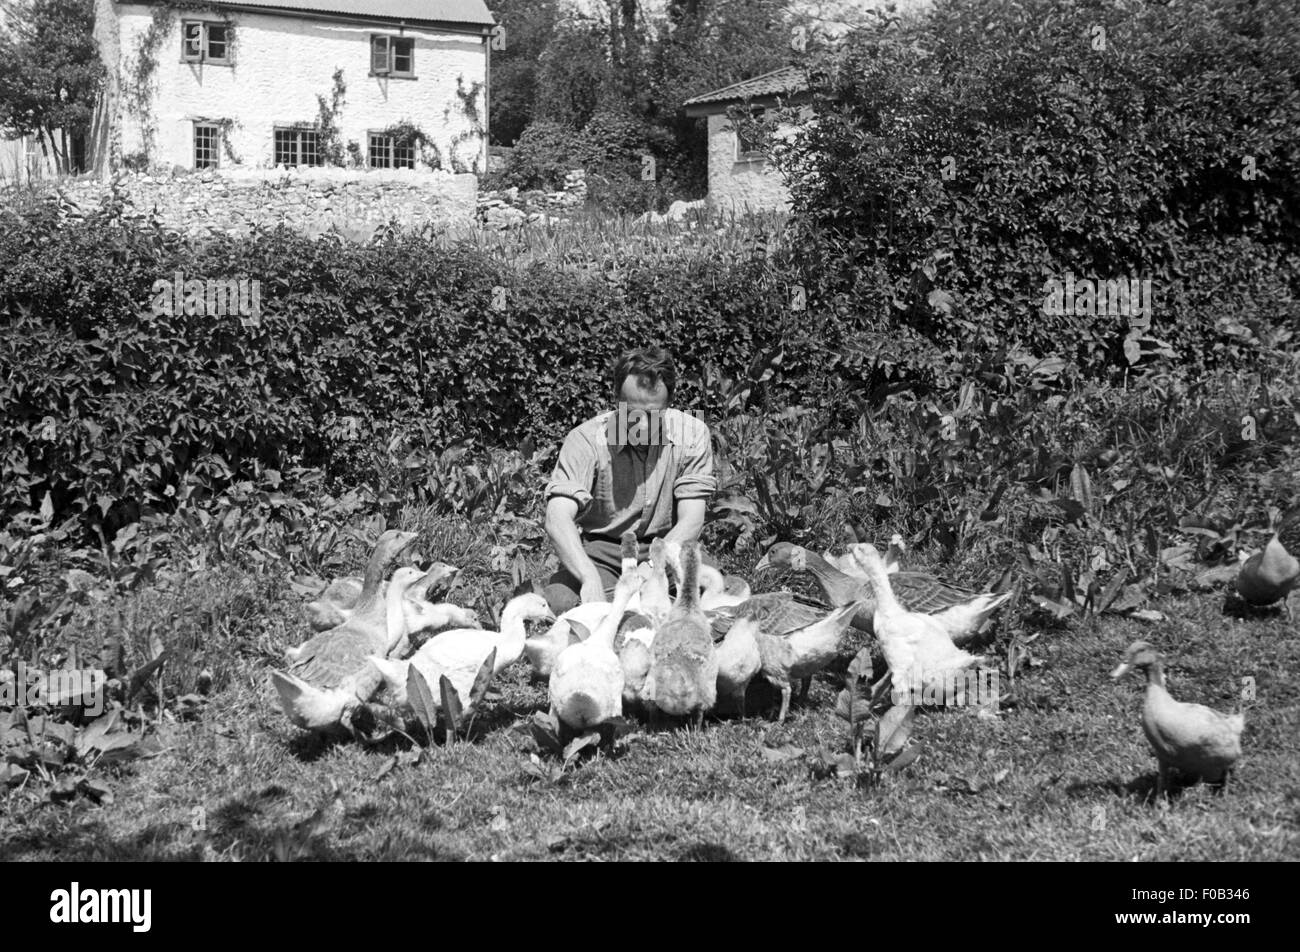 A man feeding geese and ducks in his garden outside a country cottage - Stock Image